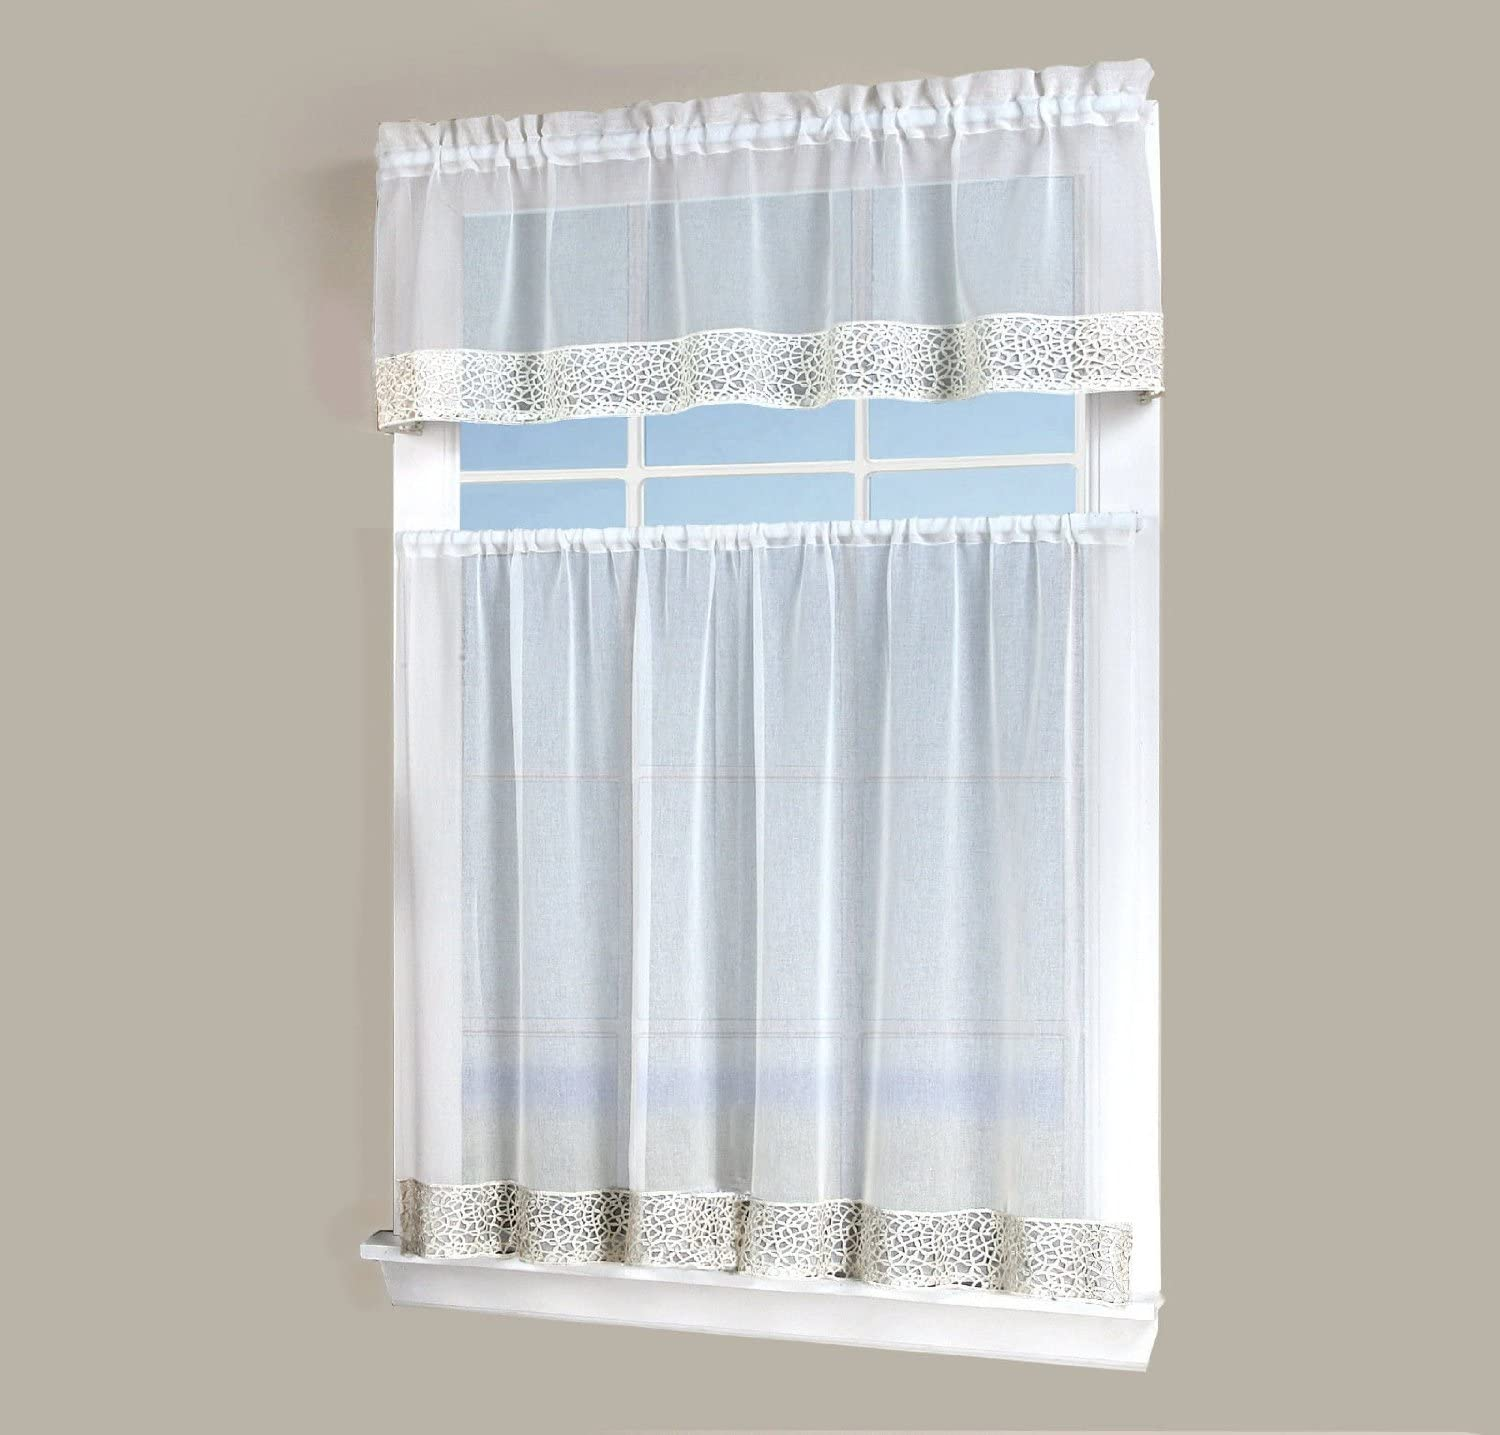 Regal Home Collections Vienna Macrame 3 Piece Kitchen Curtains Tier Set 54 Inch Wide By 36 Inch Long Beige Home Kitchen